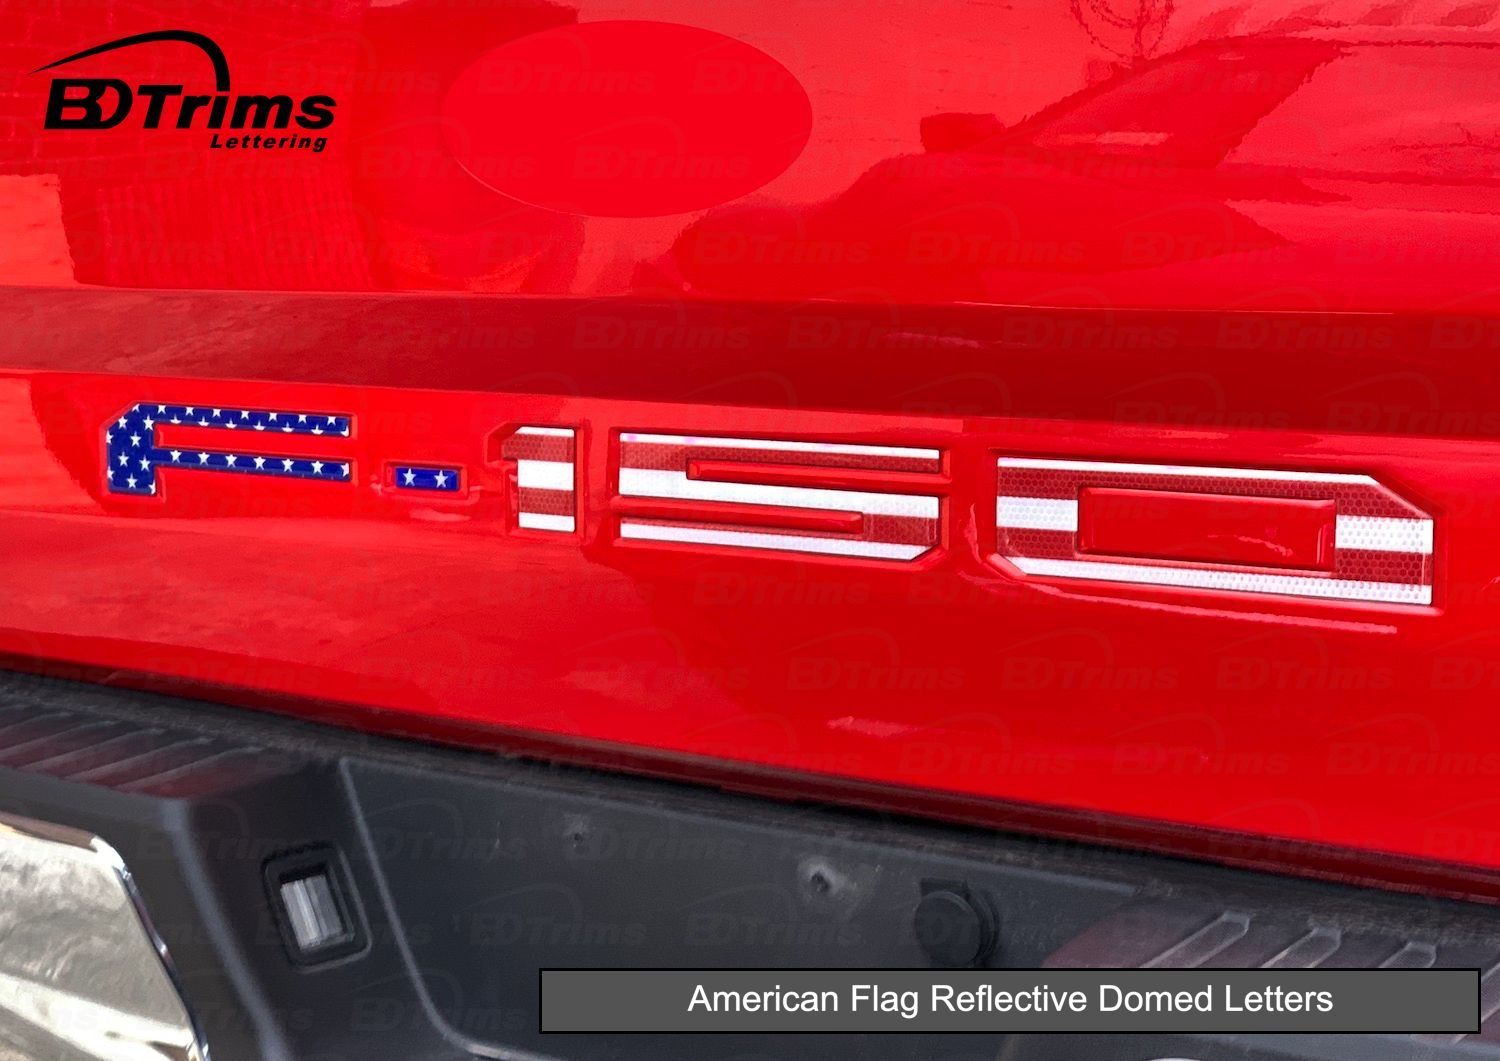 BDTrims Domed Letters Inserts fits TRD Skid Plate for 4Runner 2015-2019 Models Red Carbon